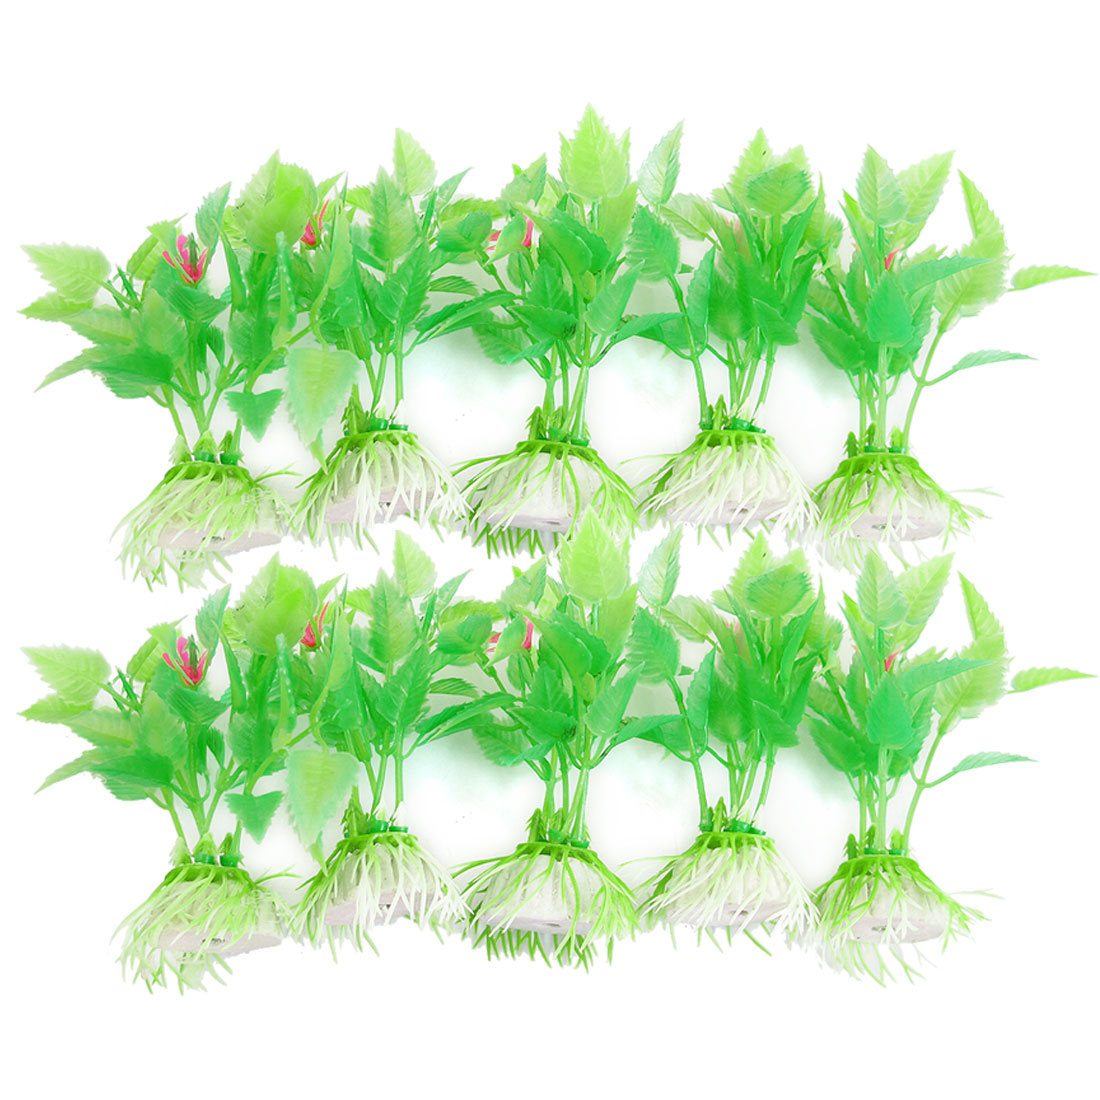 "10 Pcs Aquarium Decorative 3.5"" High Green Florescent Plastic Plants"